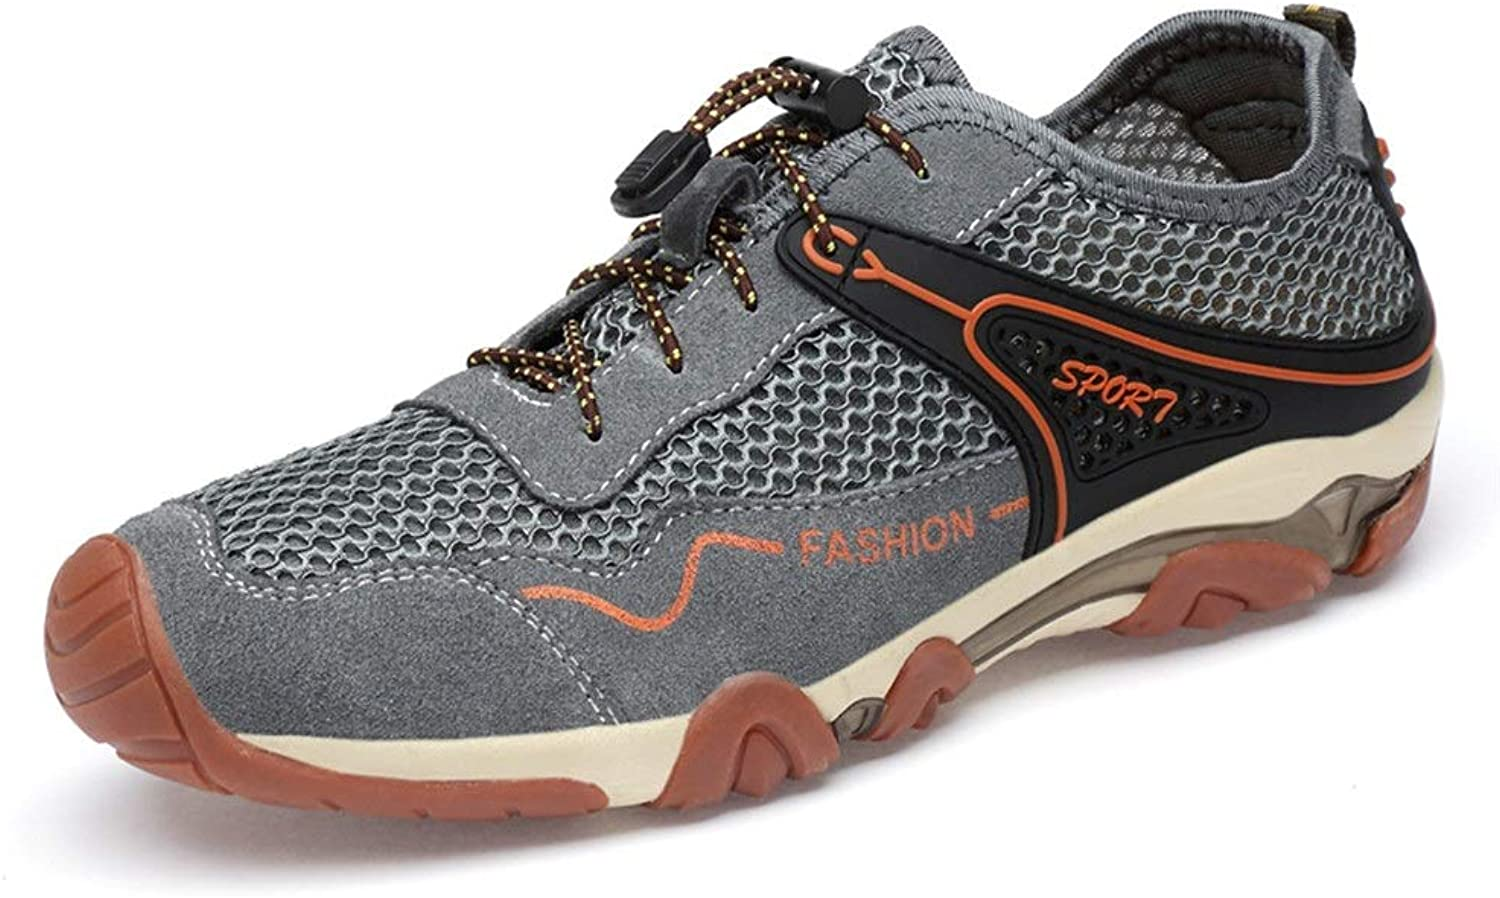 Ino Durable Athletic Sneaker for Men Elastic Cord Mesh Fabric Outdoor Sports Hiking Mountain Climbing shoes